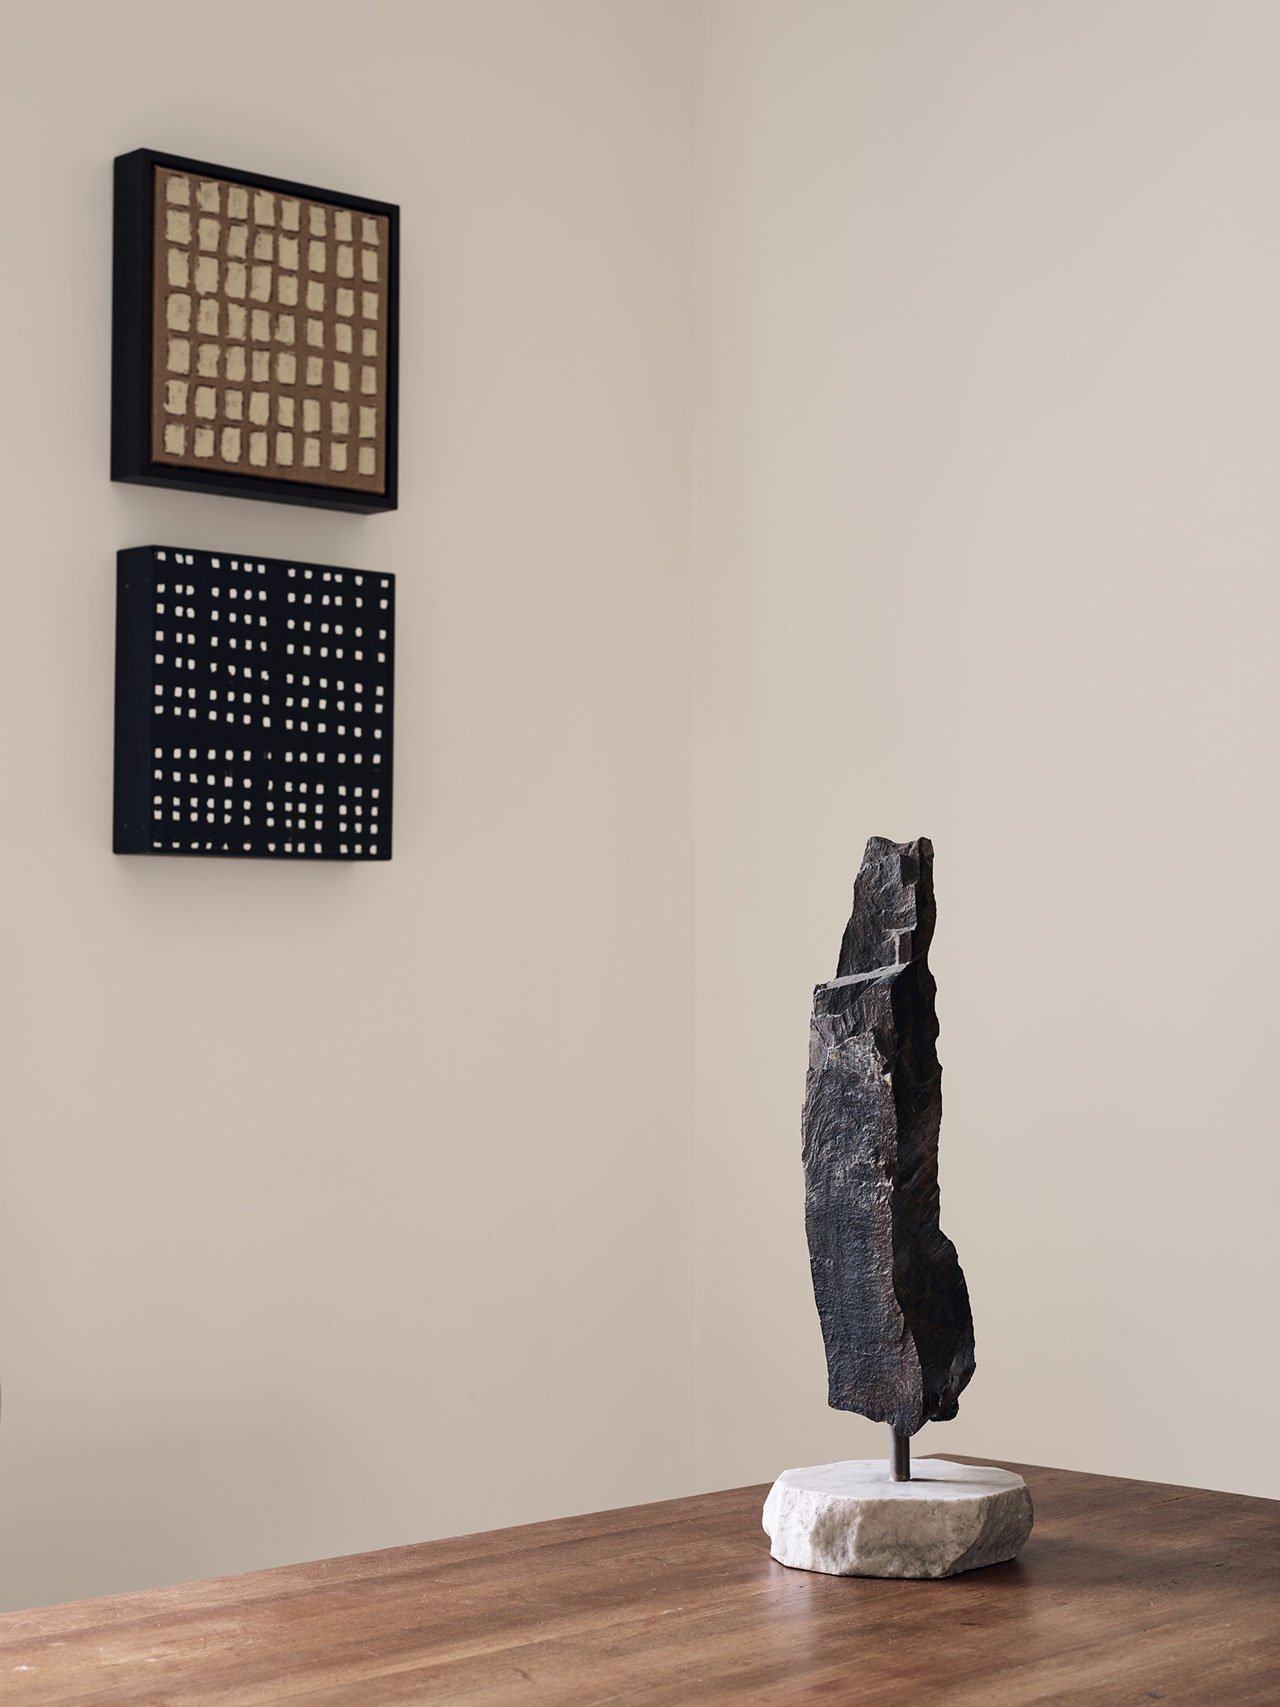 Sculptures and artworks integrated into decor gave it special charm and chic